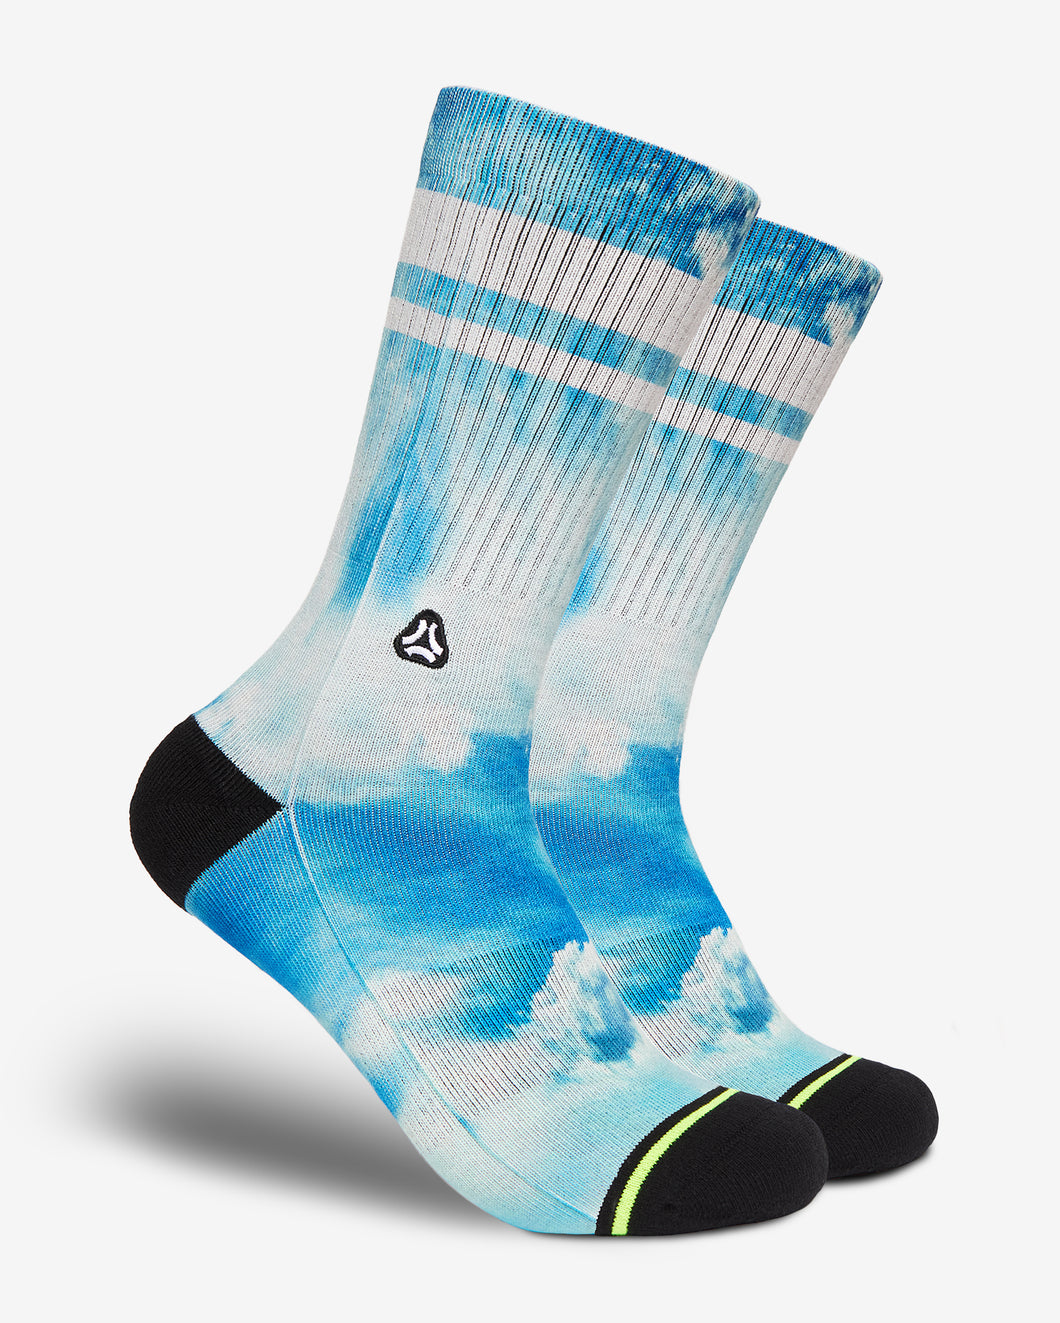 FLINCK sokken blue sky crossfit socks men women